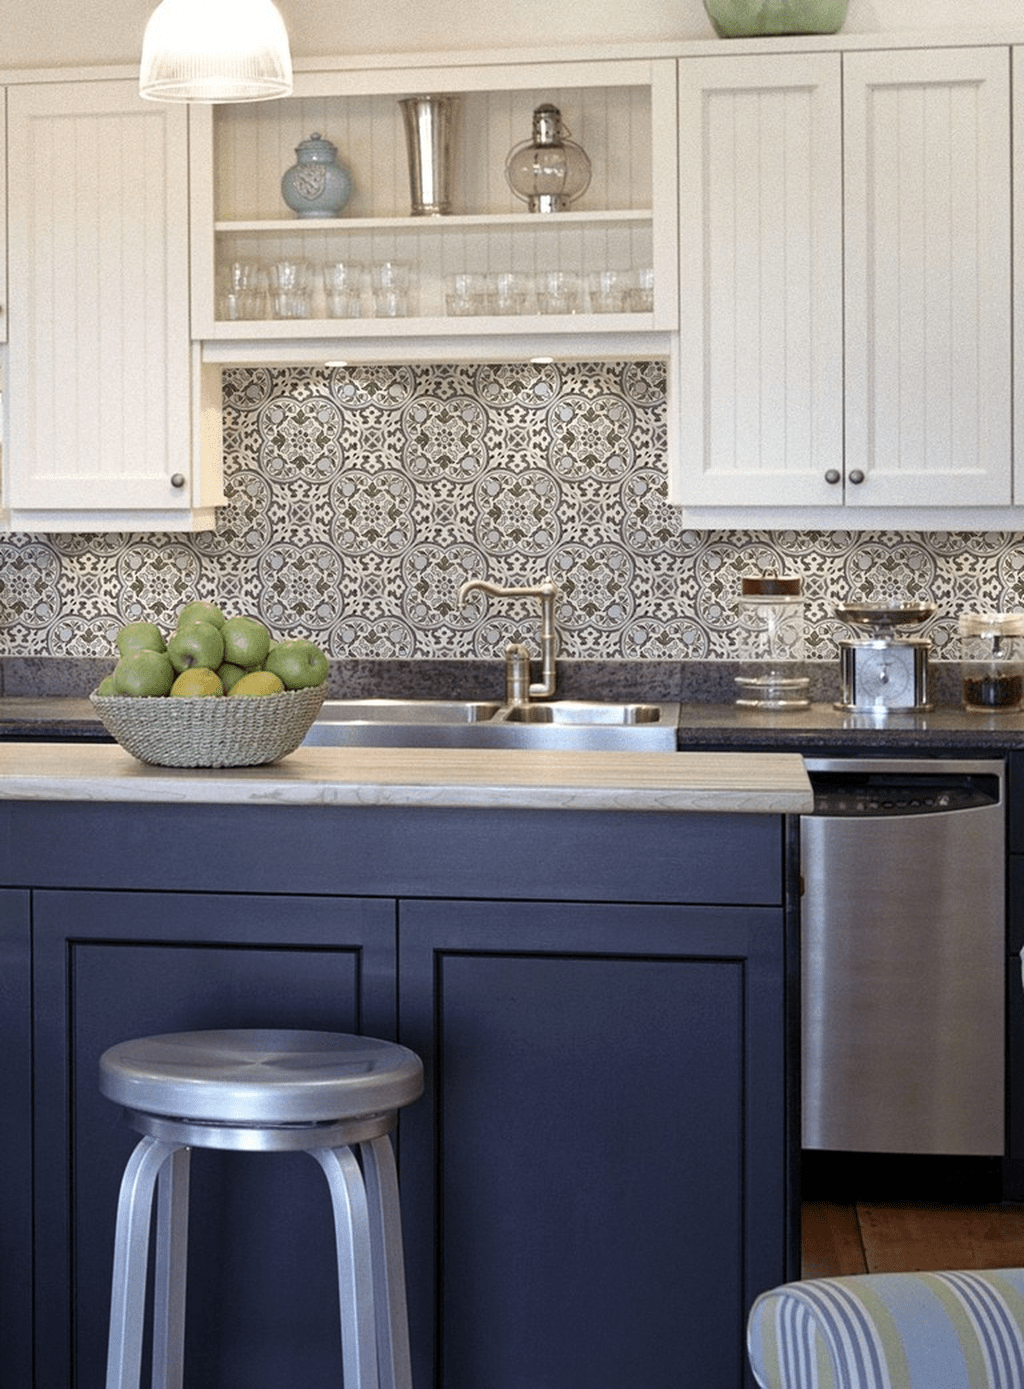 32 Popular Mosaic Tile Backsplash Kitchen Ideas Mosaic Tile Kitchen Mosaic Tile Backsplash Kitchen Kitchen Tiles Backsplash